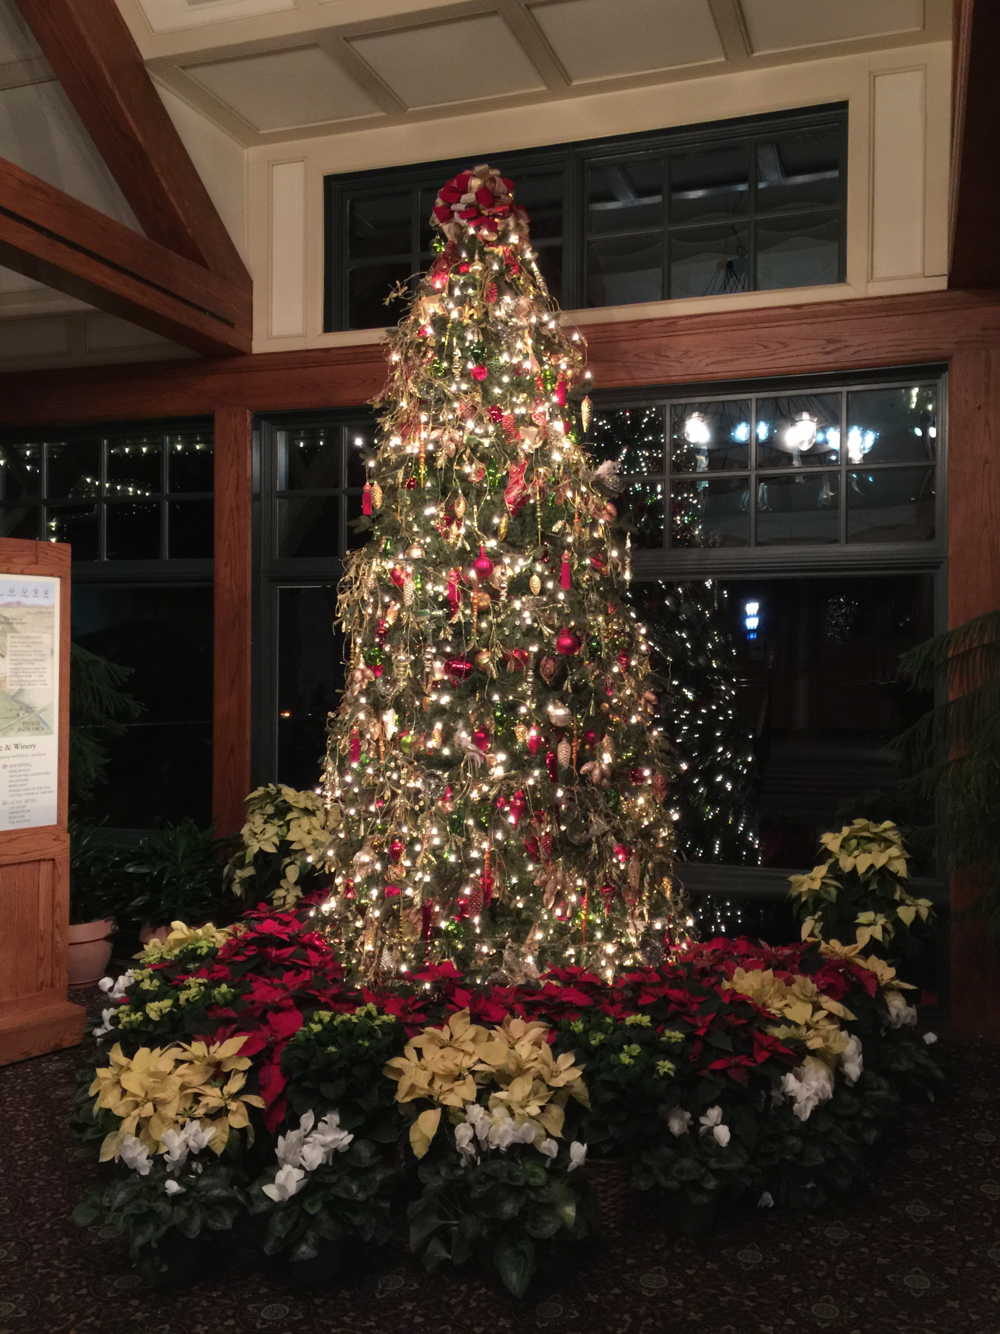 Biltmore Visitor Center Christmas tree (click to enlarge)